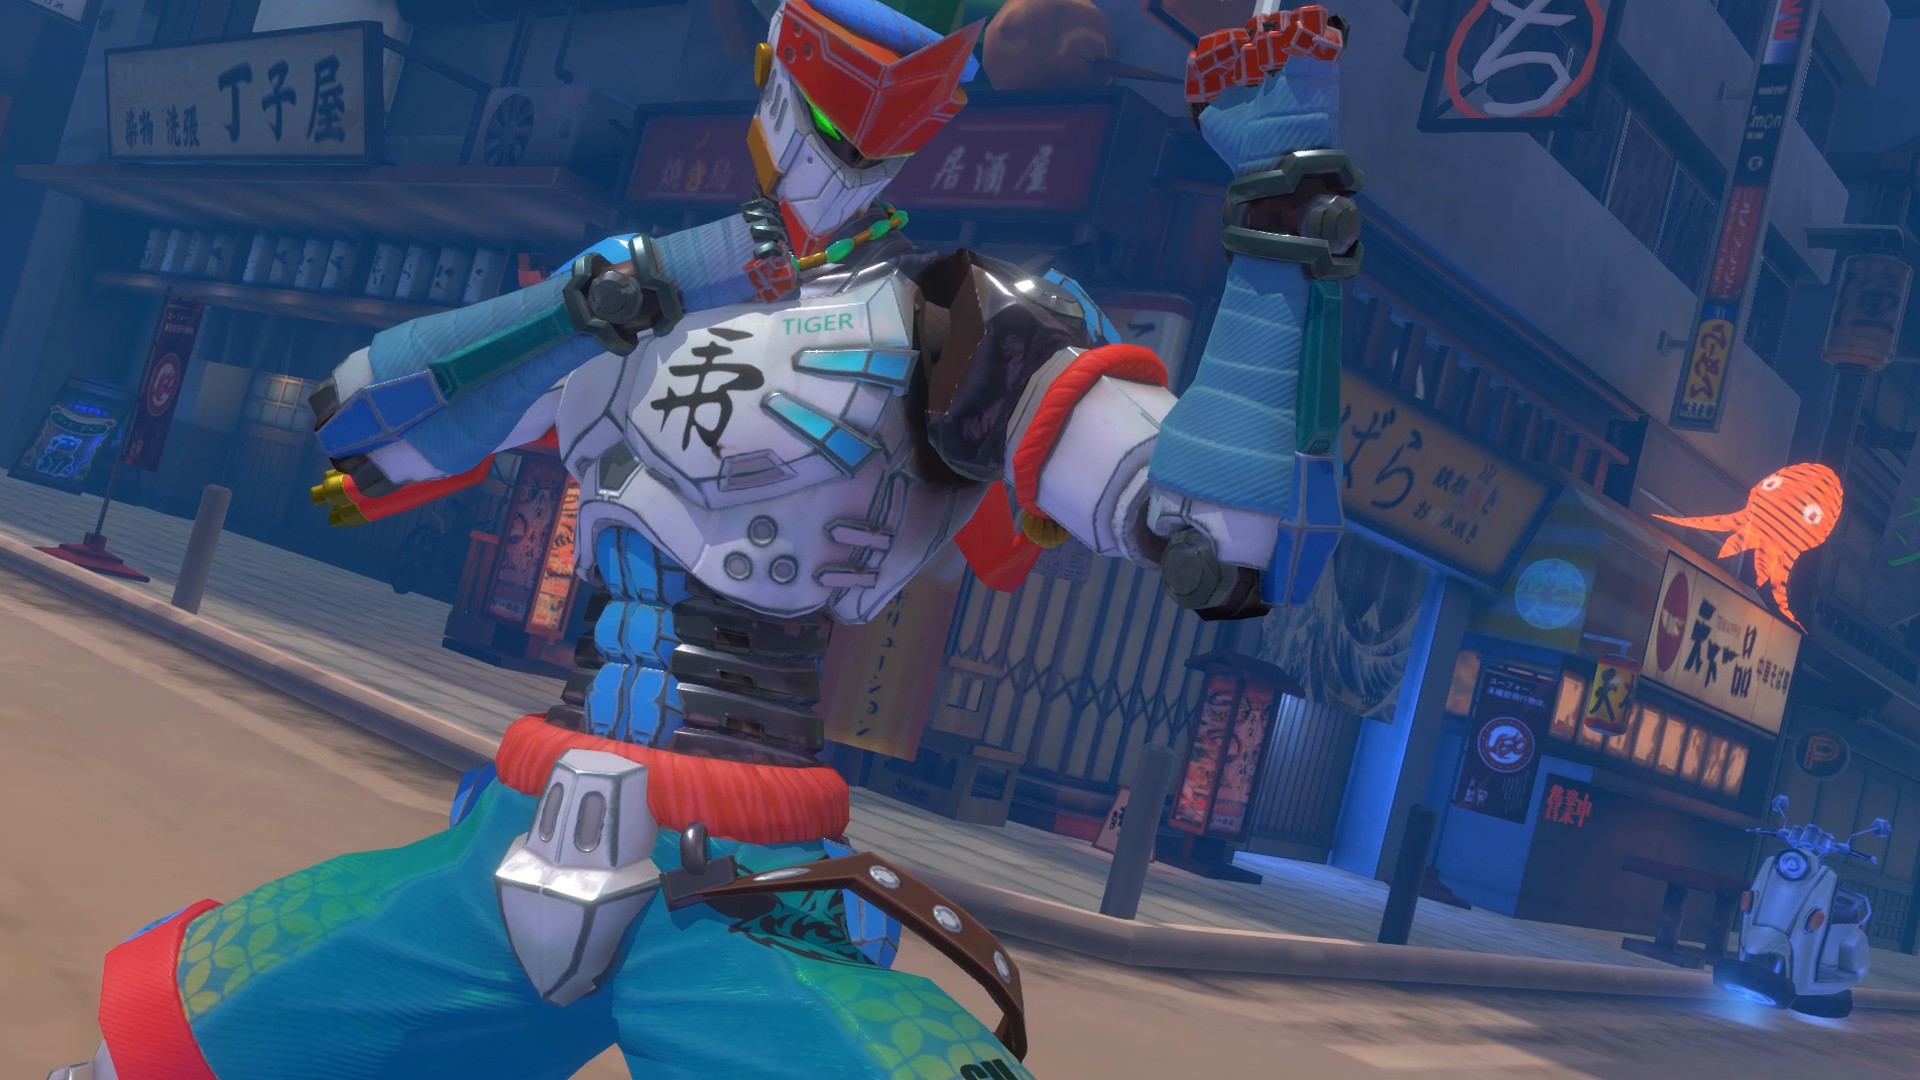 Igniting a Chinese fighting game revolution